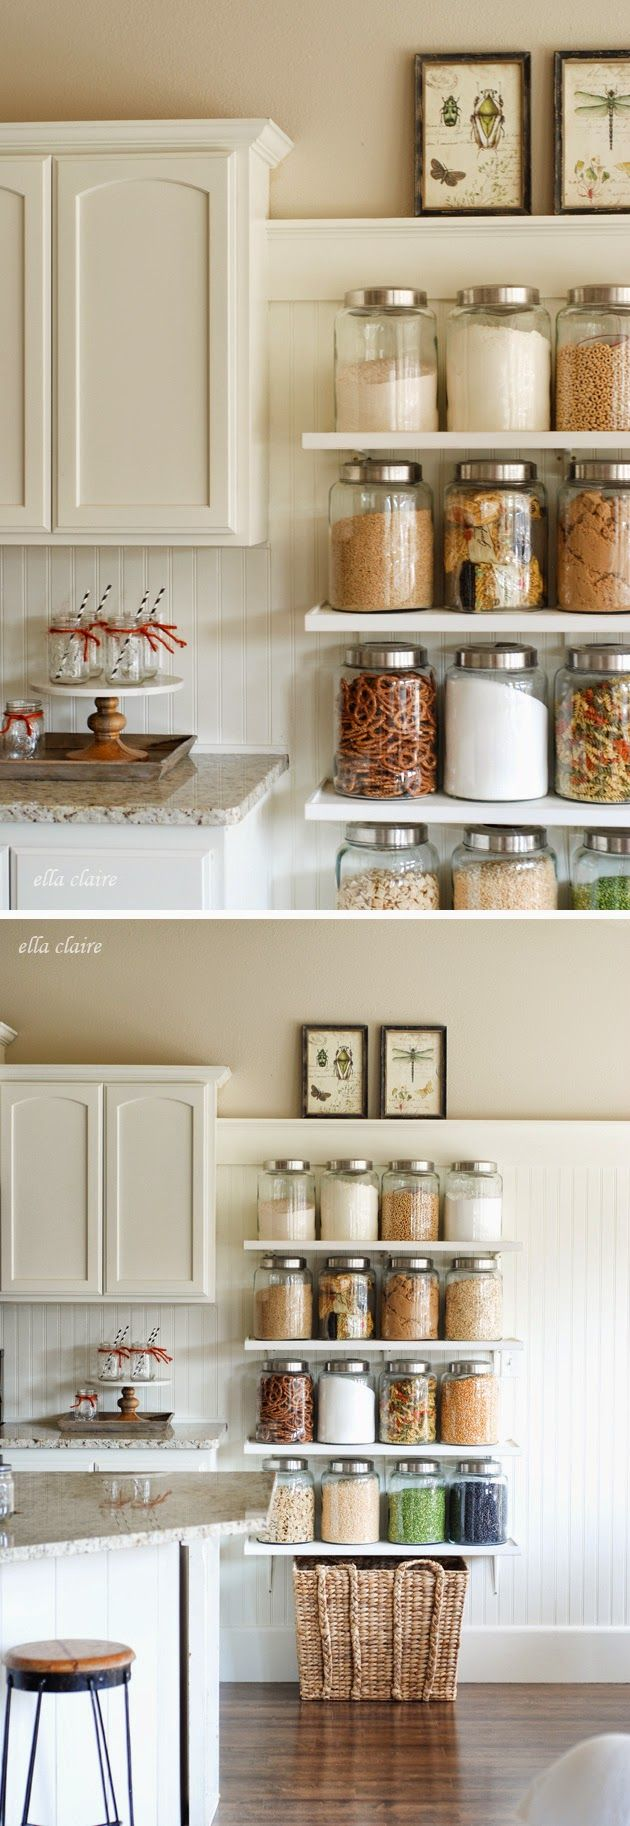 DIY Open Kitchen Shelves. A pretty and unique way to add more Pantry Space!